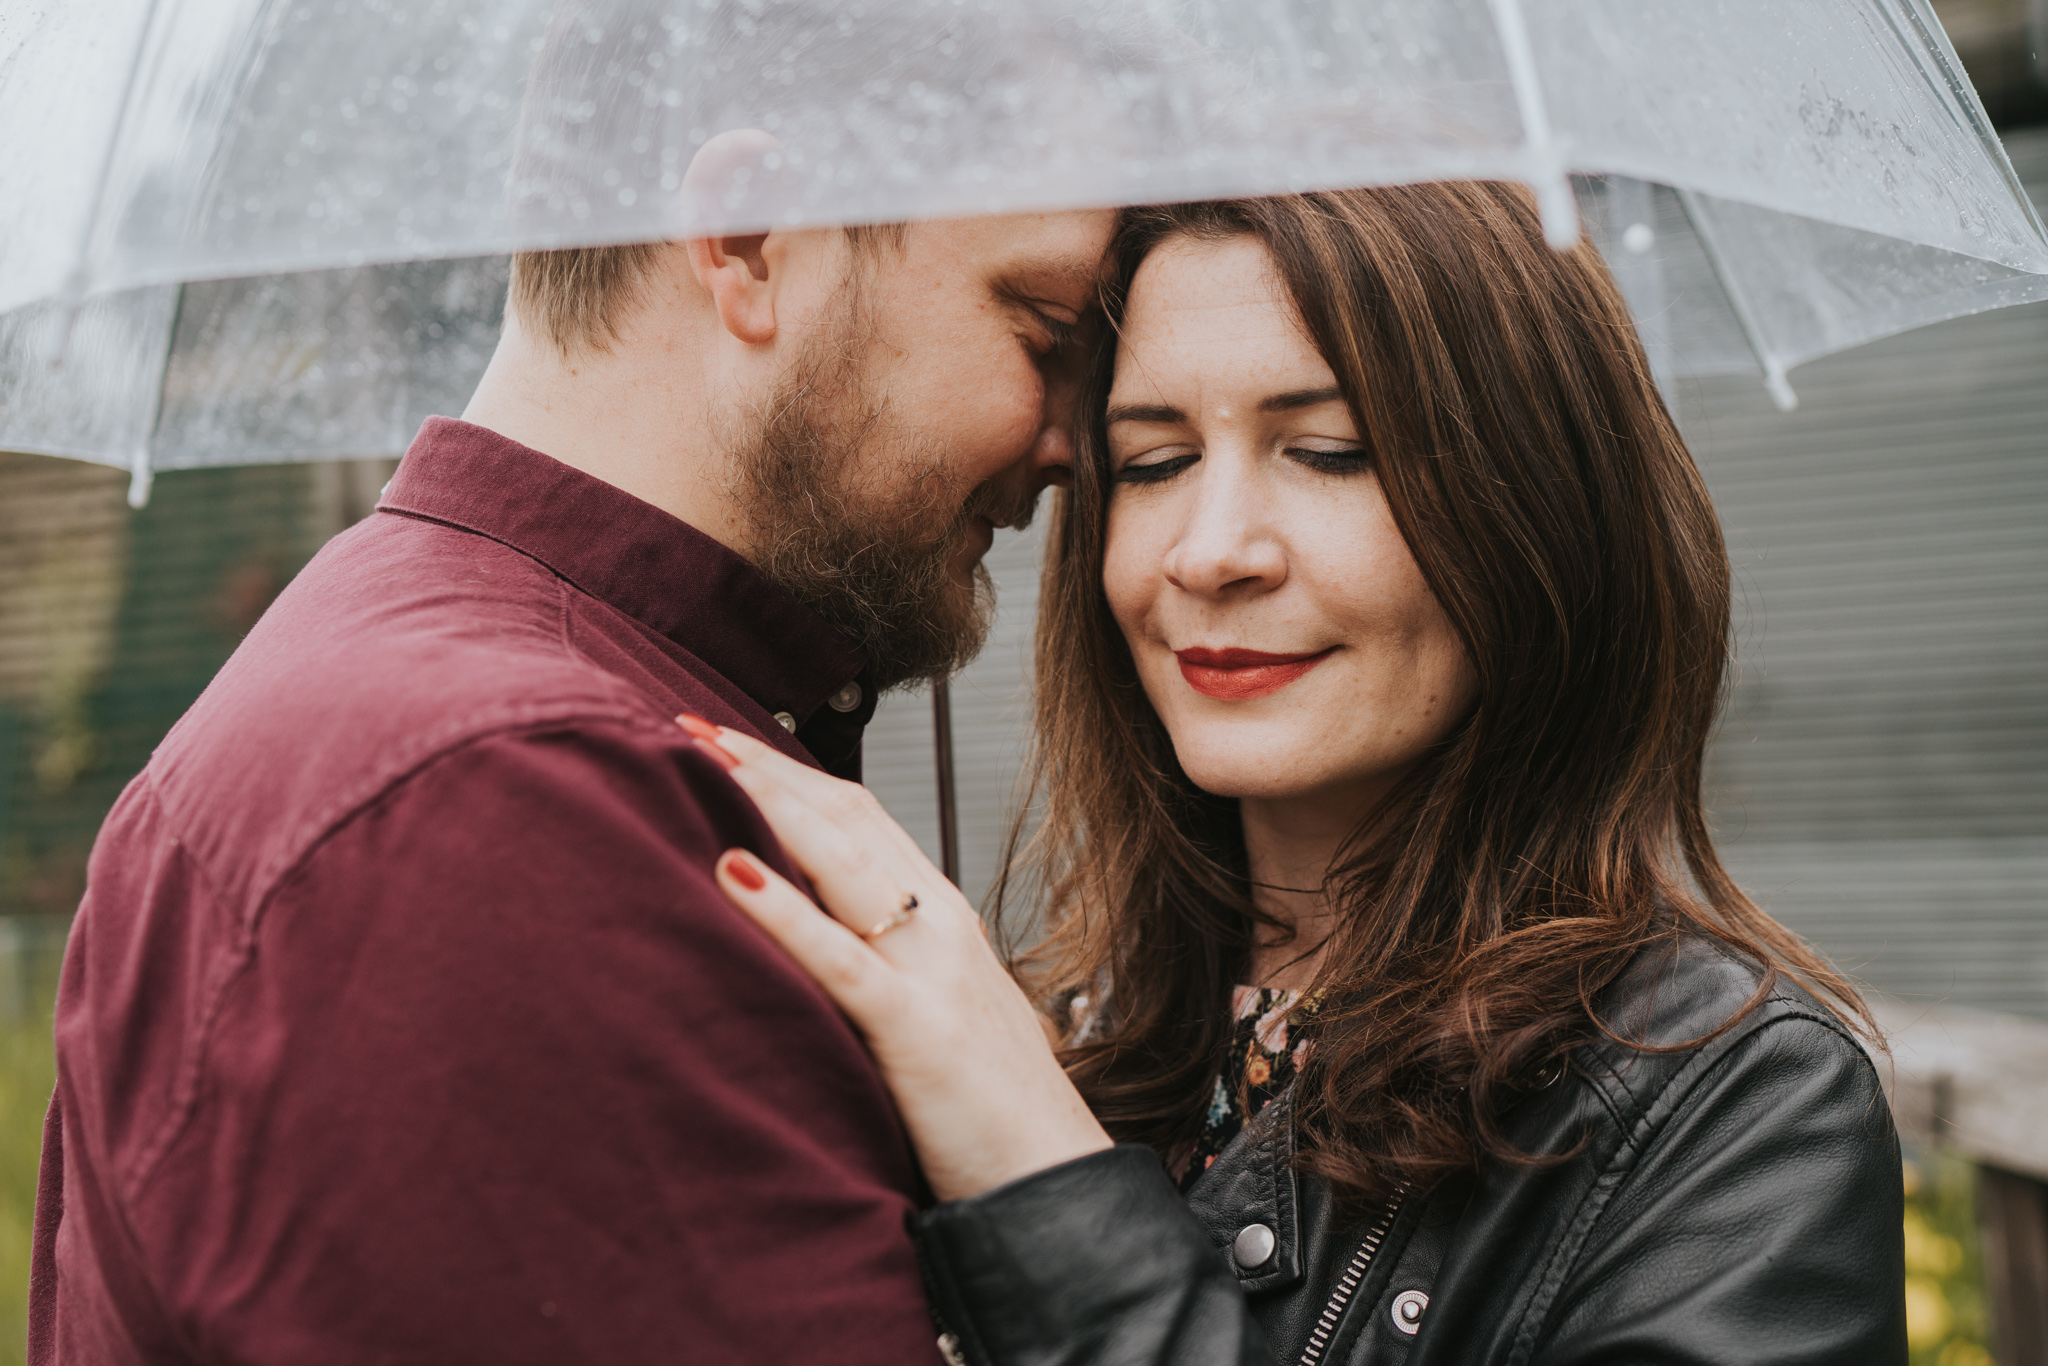 natalie-john-urban-london-engagement-grace-elizabeth-colchester-essex-alternative-wedding-photographer-essex-suffolk-norfolk-devon (30 of 66).jpg